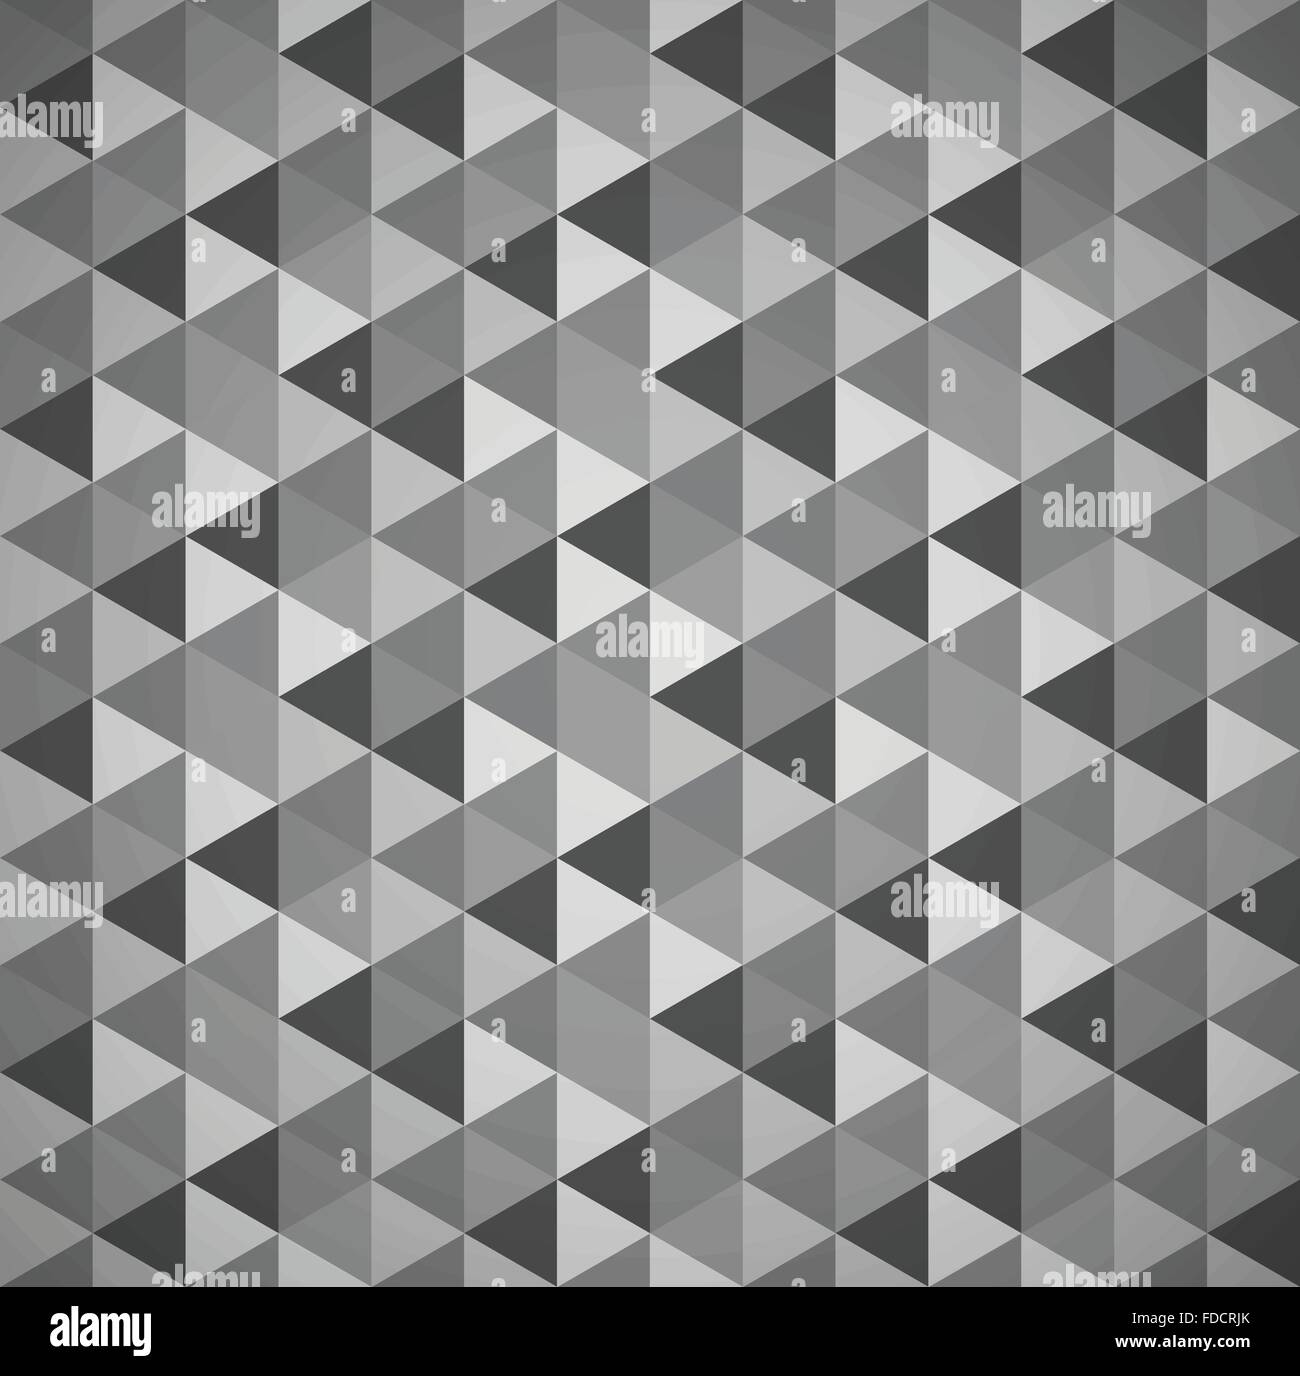 Grayscale mosaic tessellation background with triangles grayscale mosaic tessellation background with triangles seamlessly repeatable dailygadgetfo Images